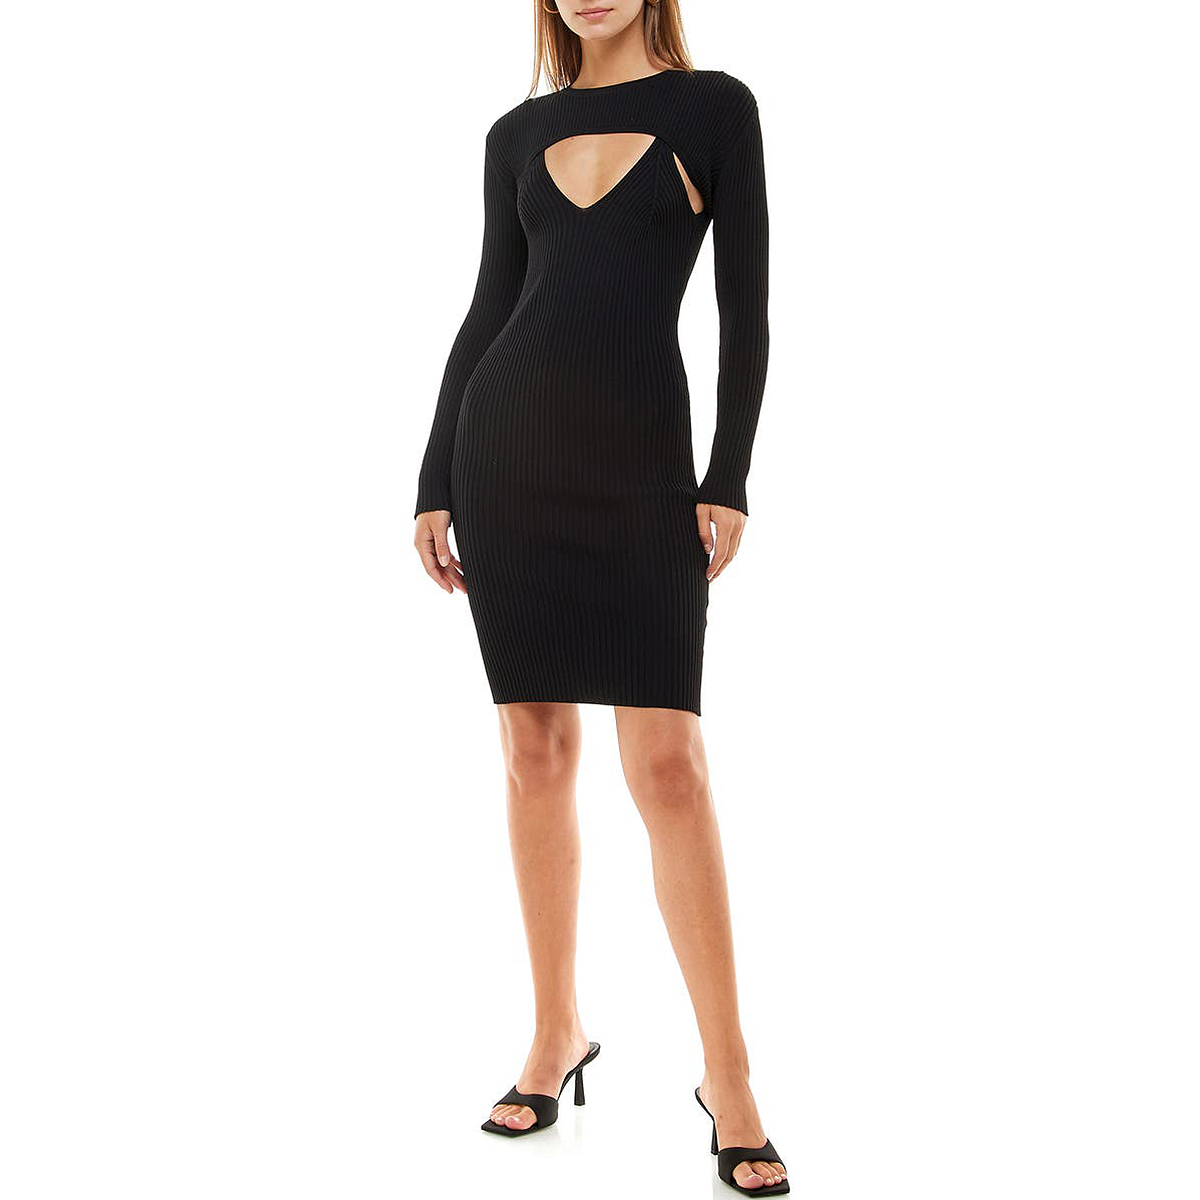 nordstrom-ribbed-clothing-cutout-dress